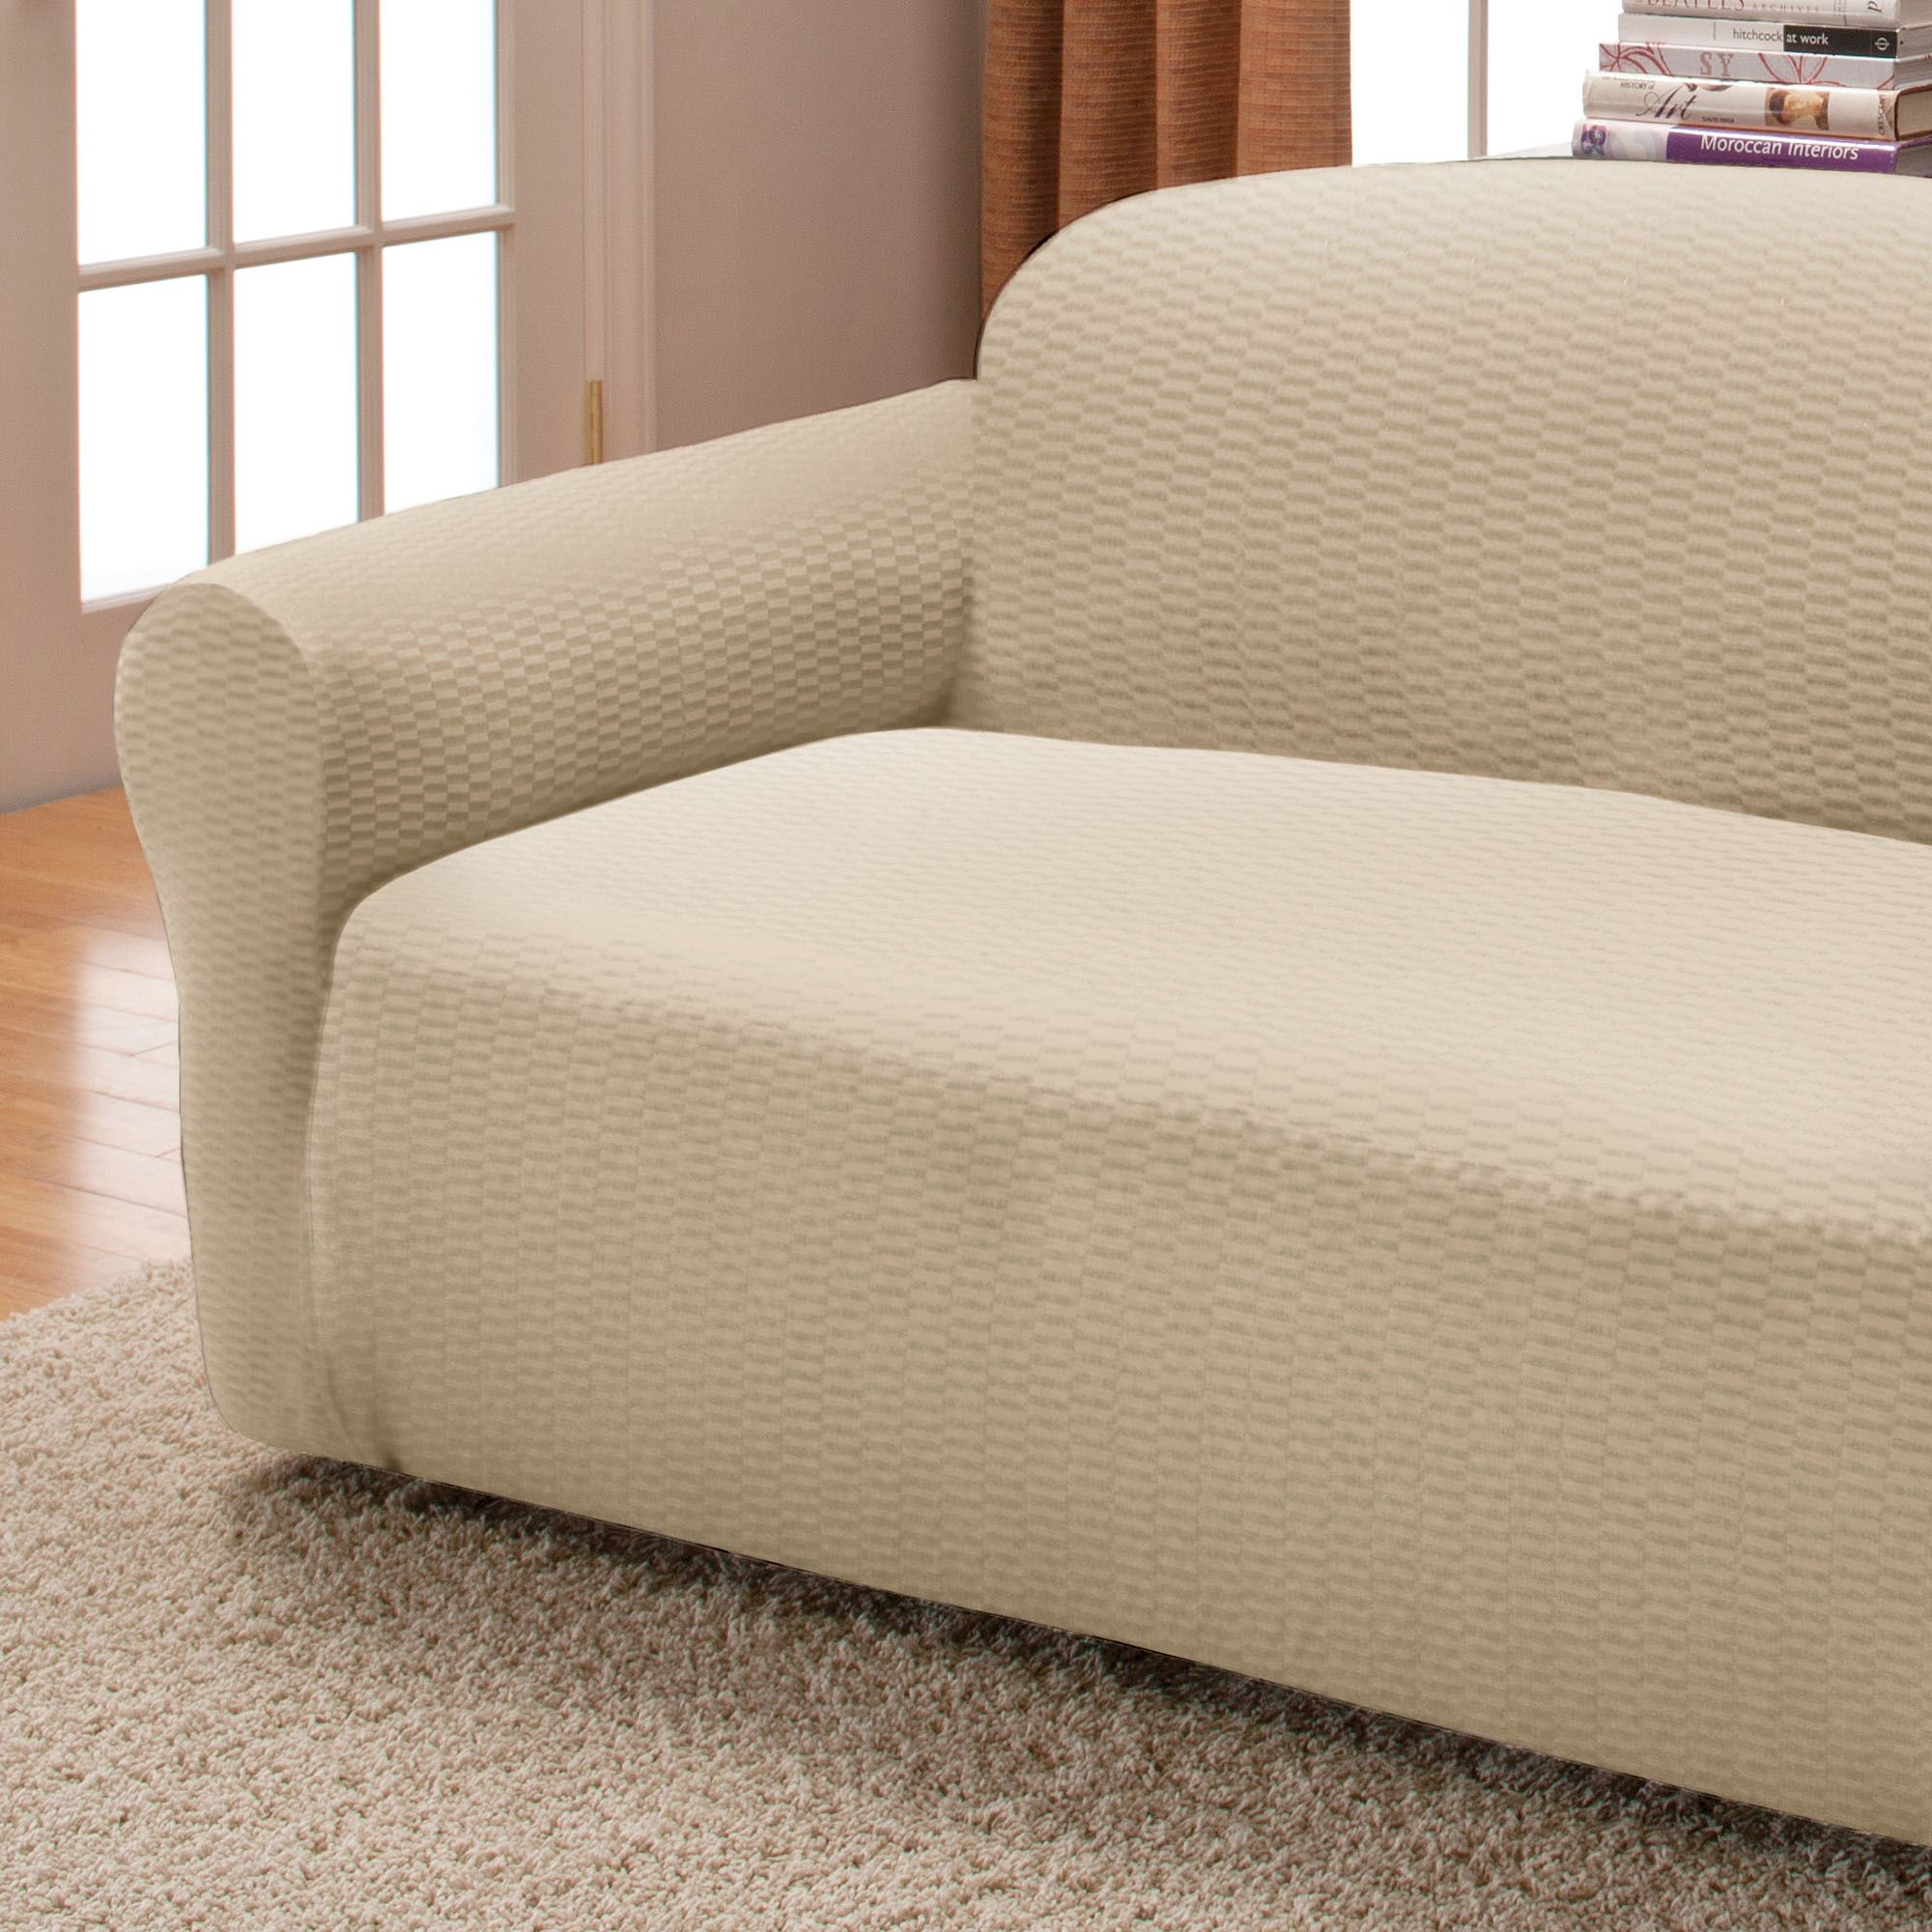 white slipcovers furniture ata dyno upholstery andreslipcoversofa custom sofa slipcover dynowhite fabric andre sofas